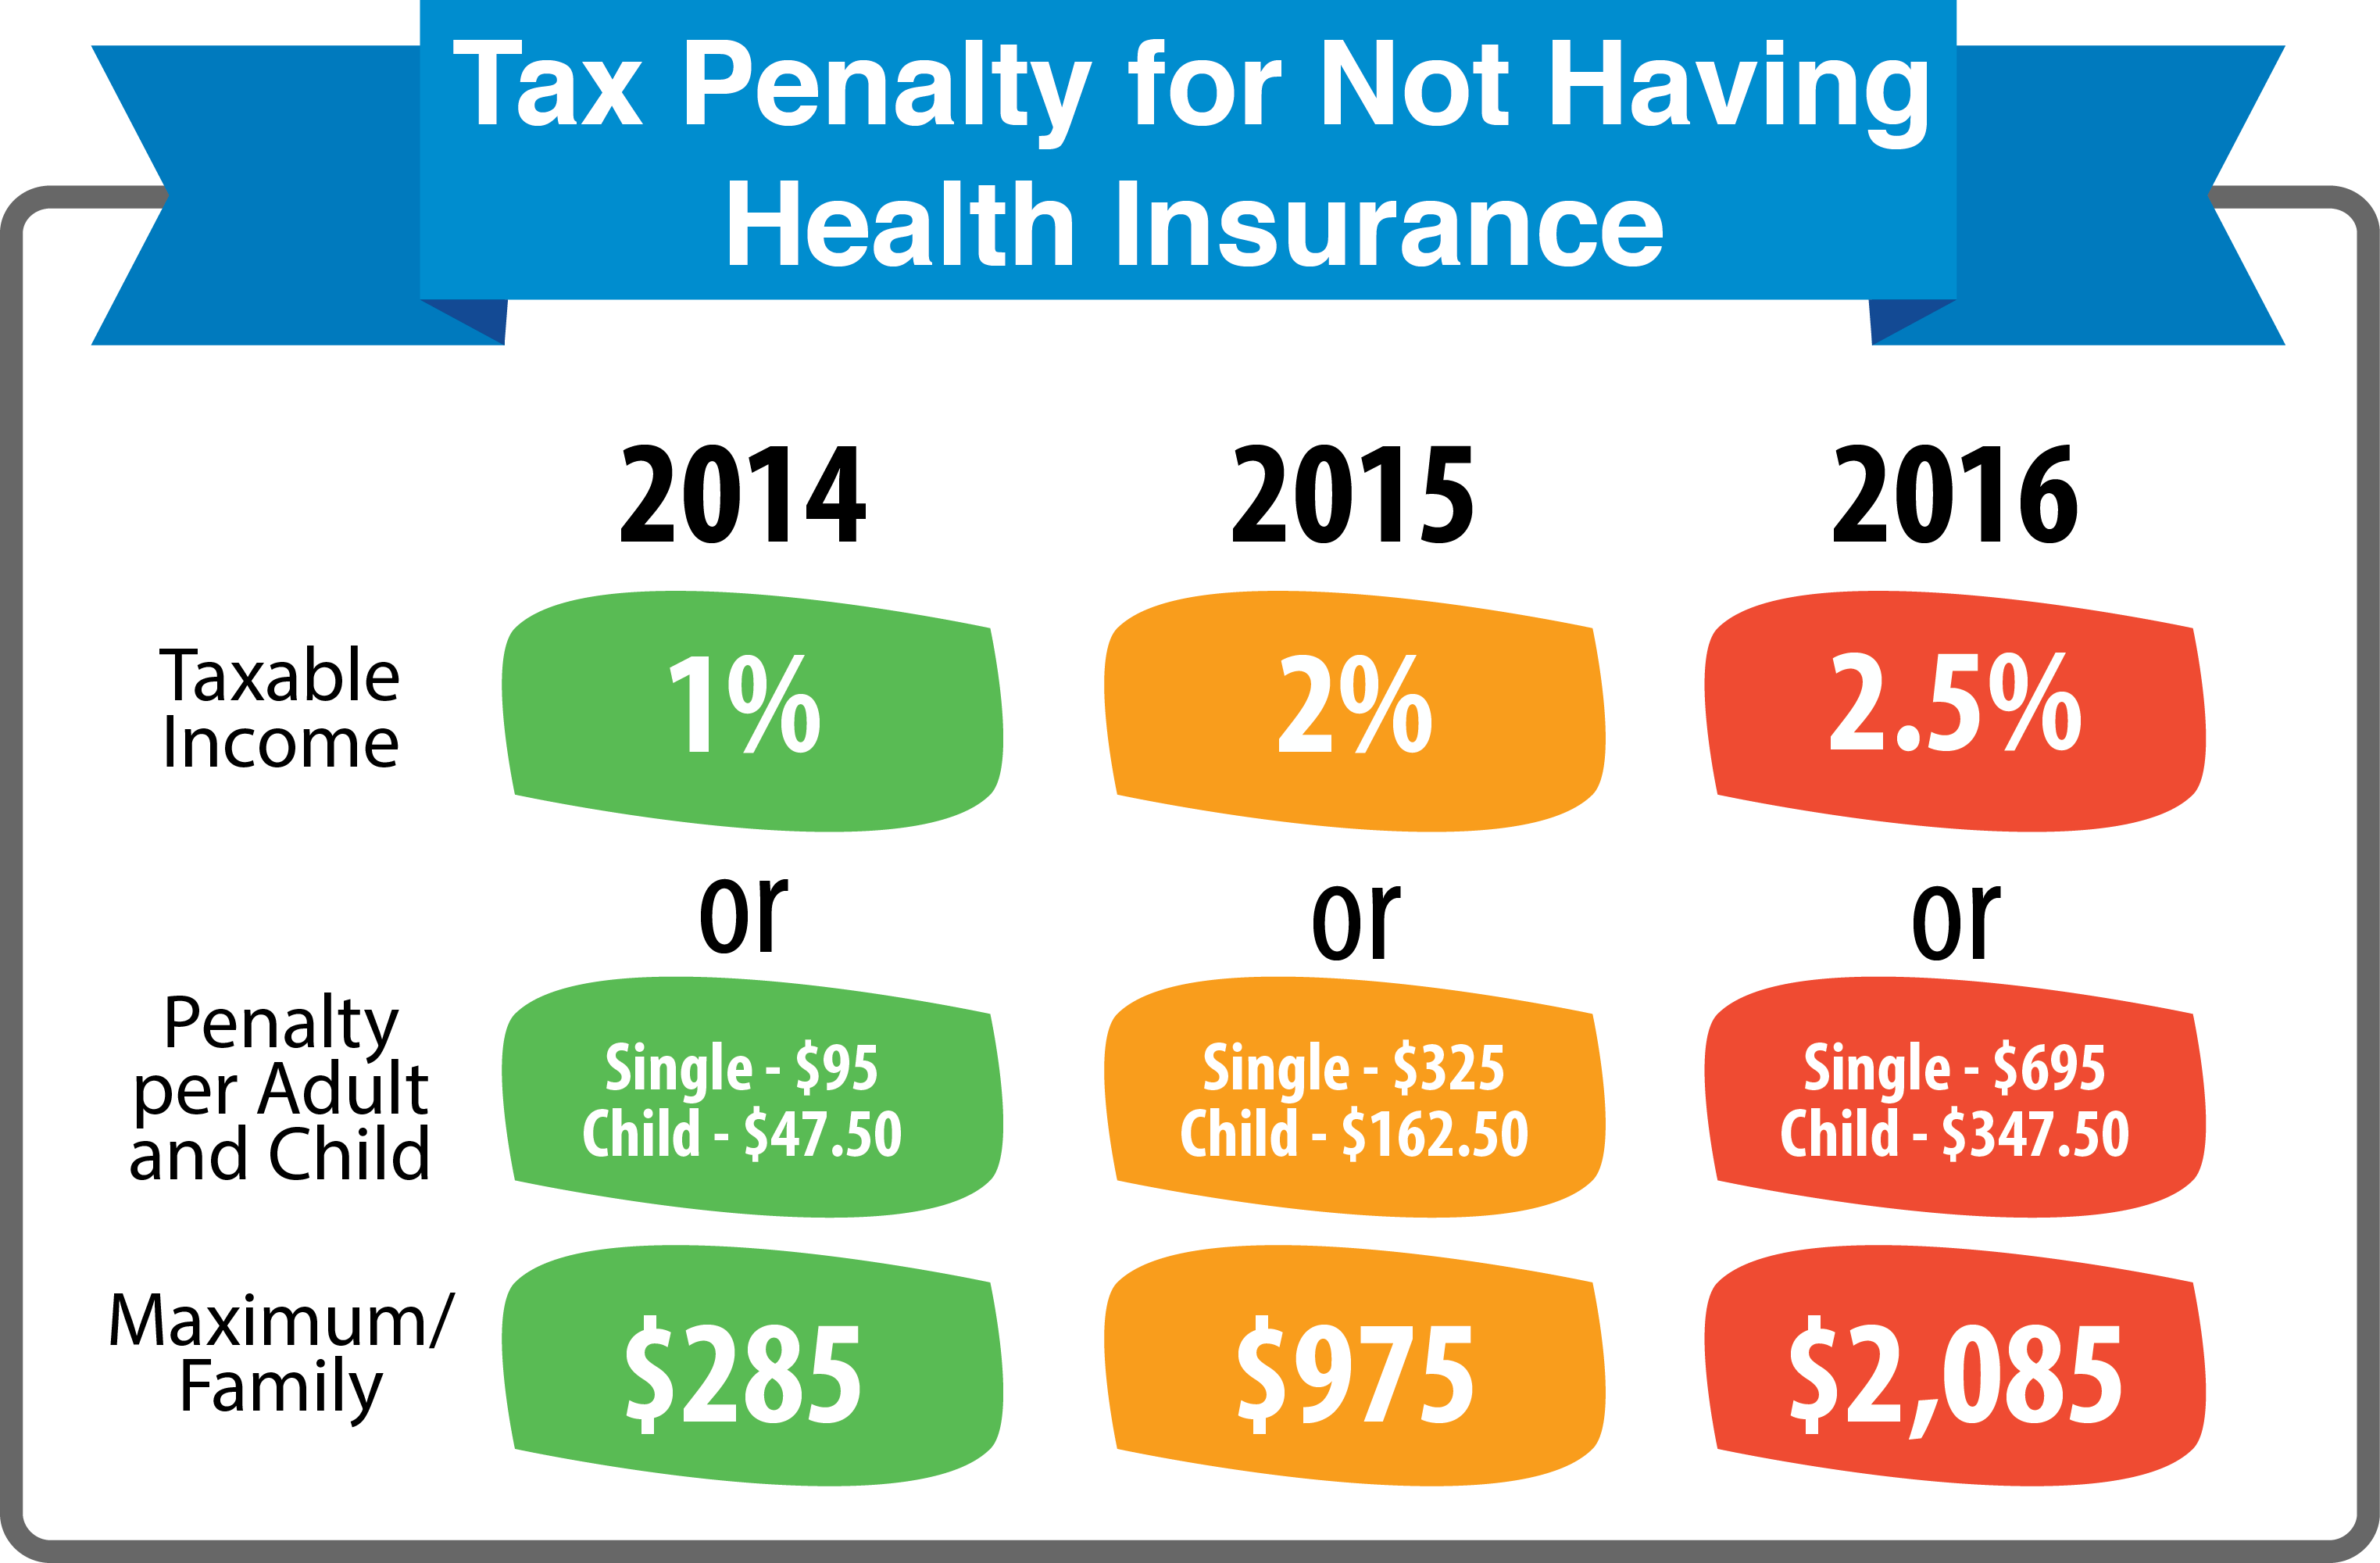 The Penalty For Not Having Minimum Essential Health Insurance For